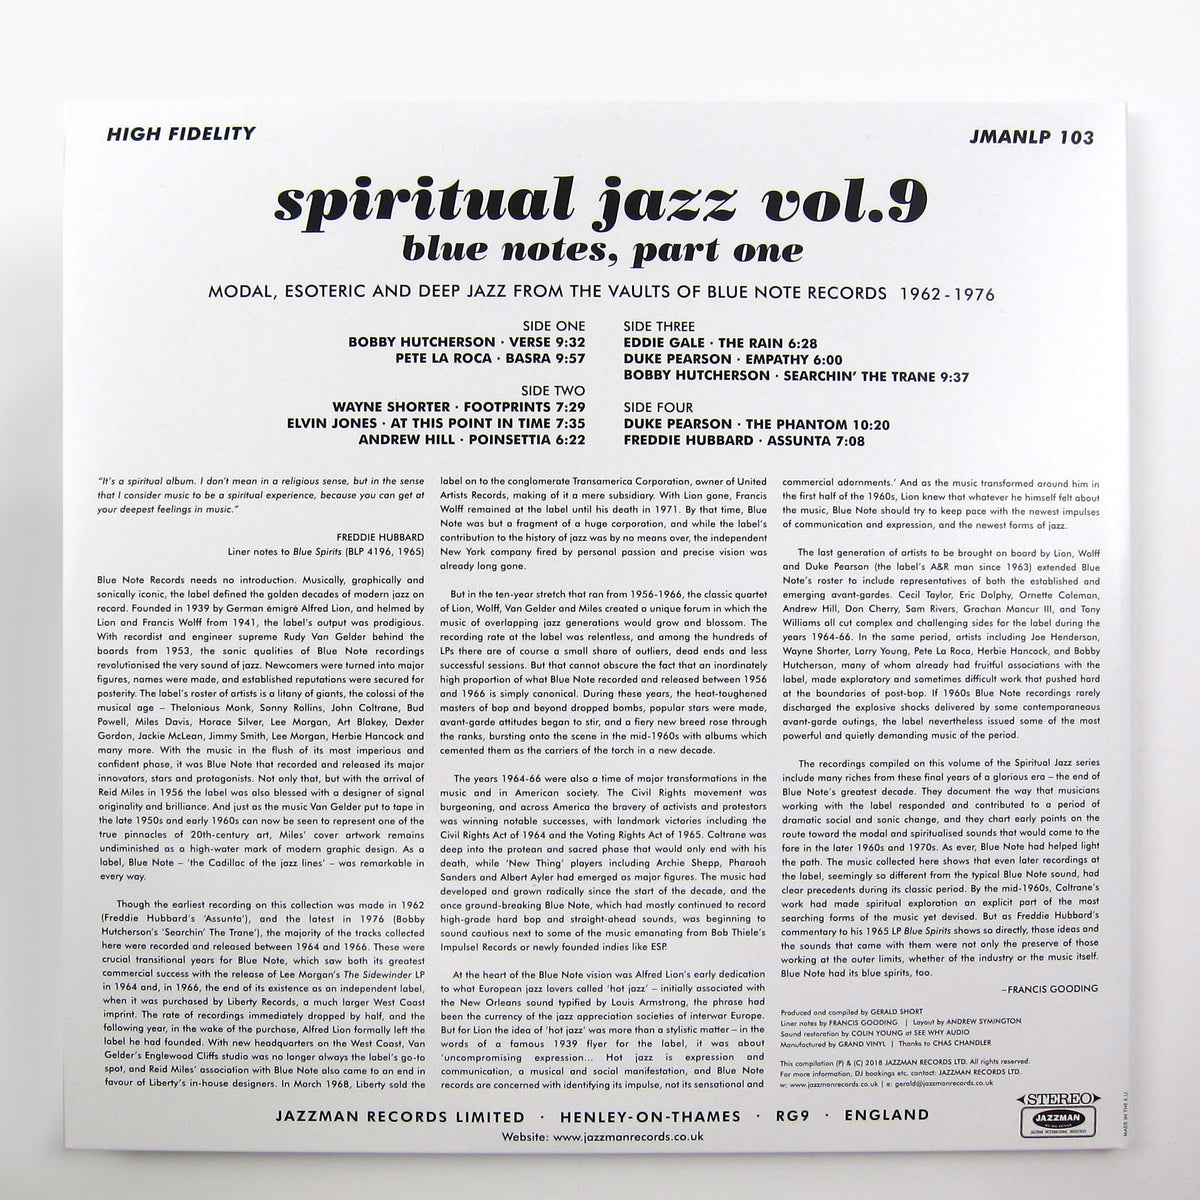 Jazzman: Spiritual Jazz 9 - Blue Notes Part One Vinyl 2LP